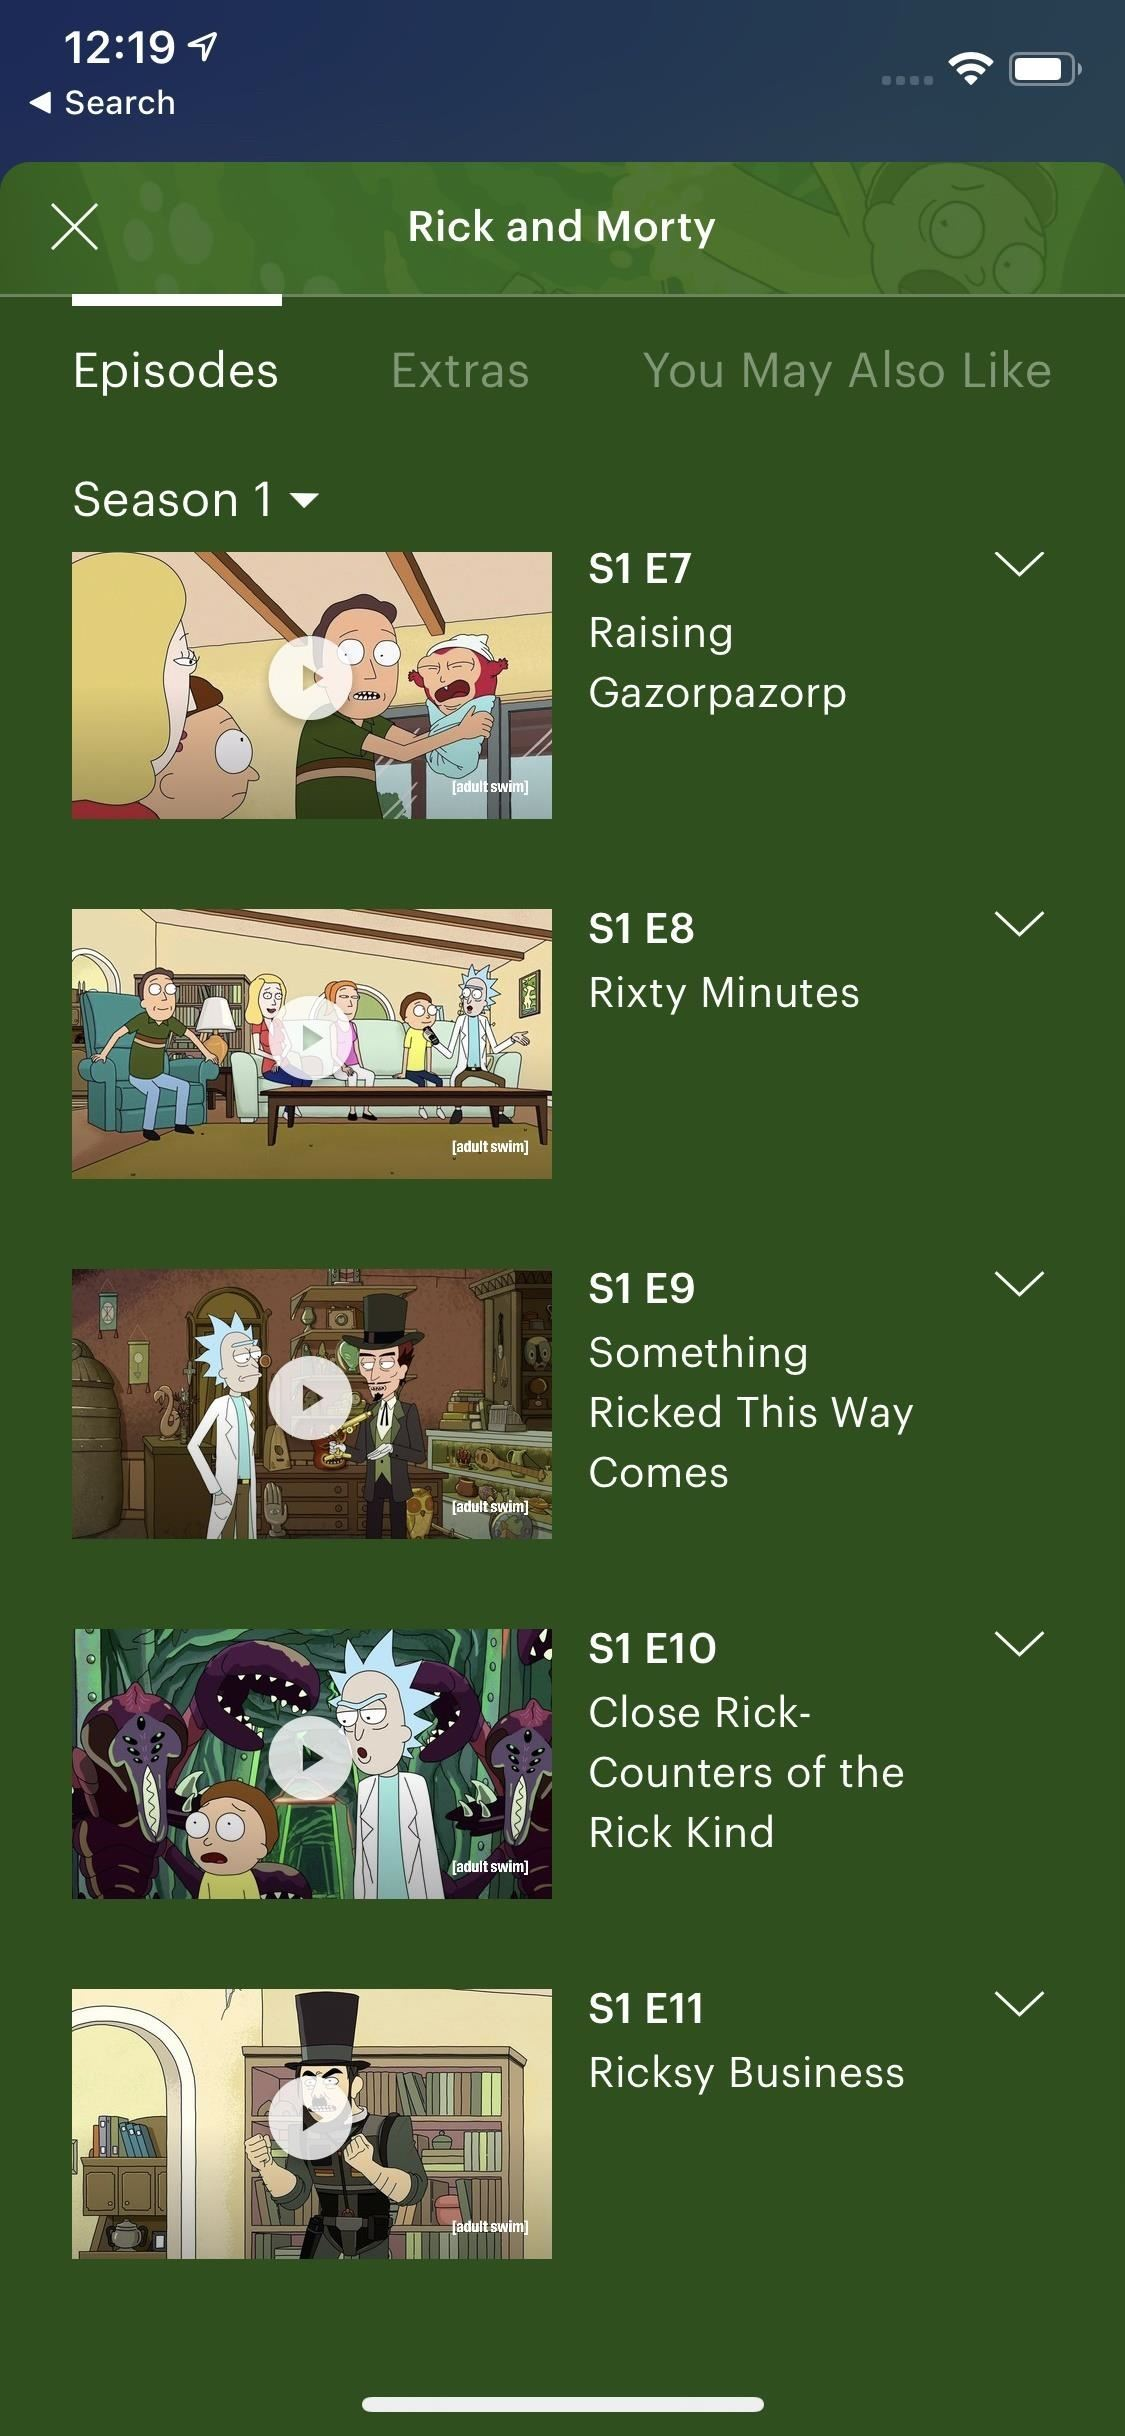 & Rick & Morty & # 39; returns this November - How to get your Favorites back or repeat